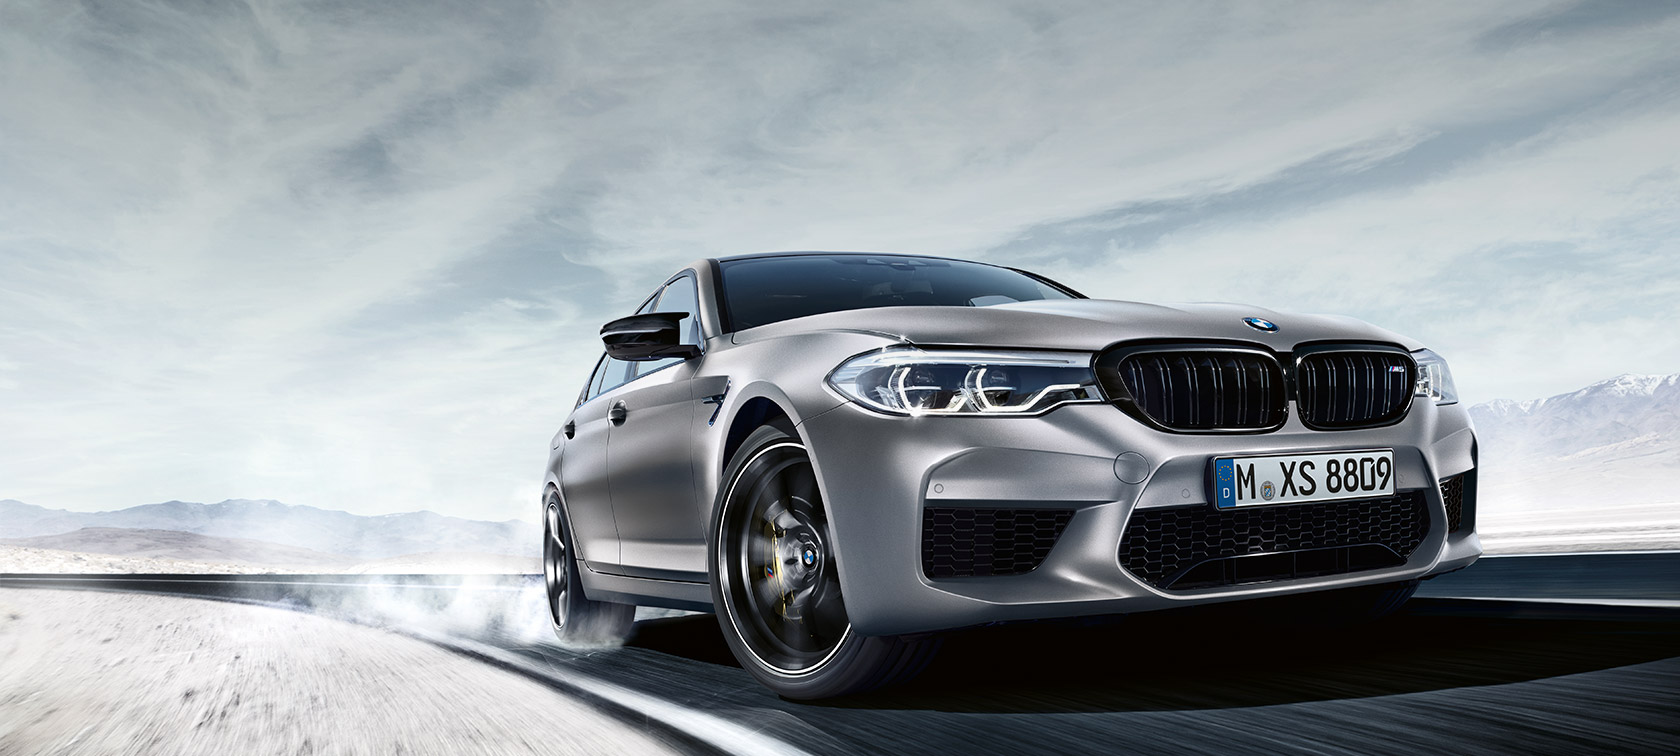 BMW M5 Competition three-quarter front view.